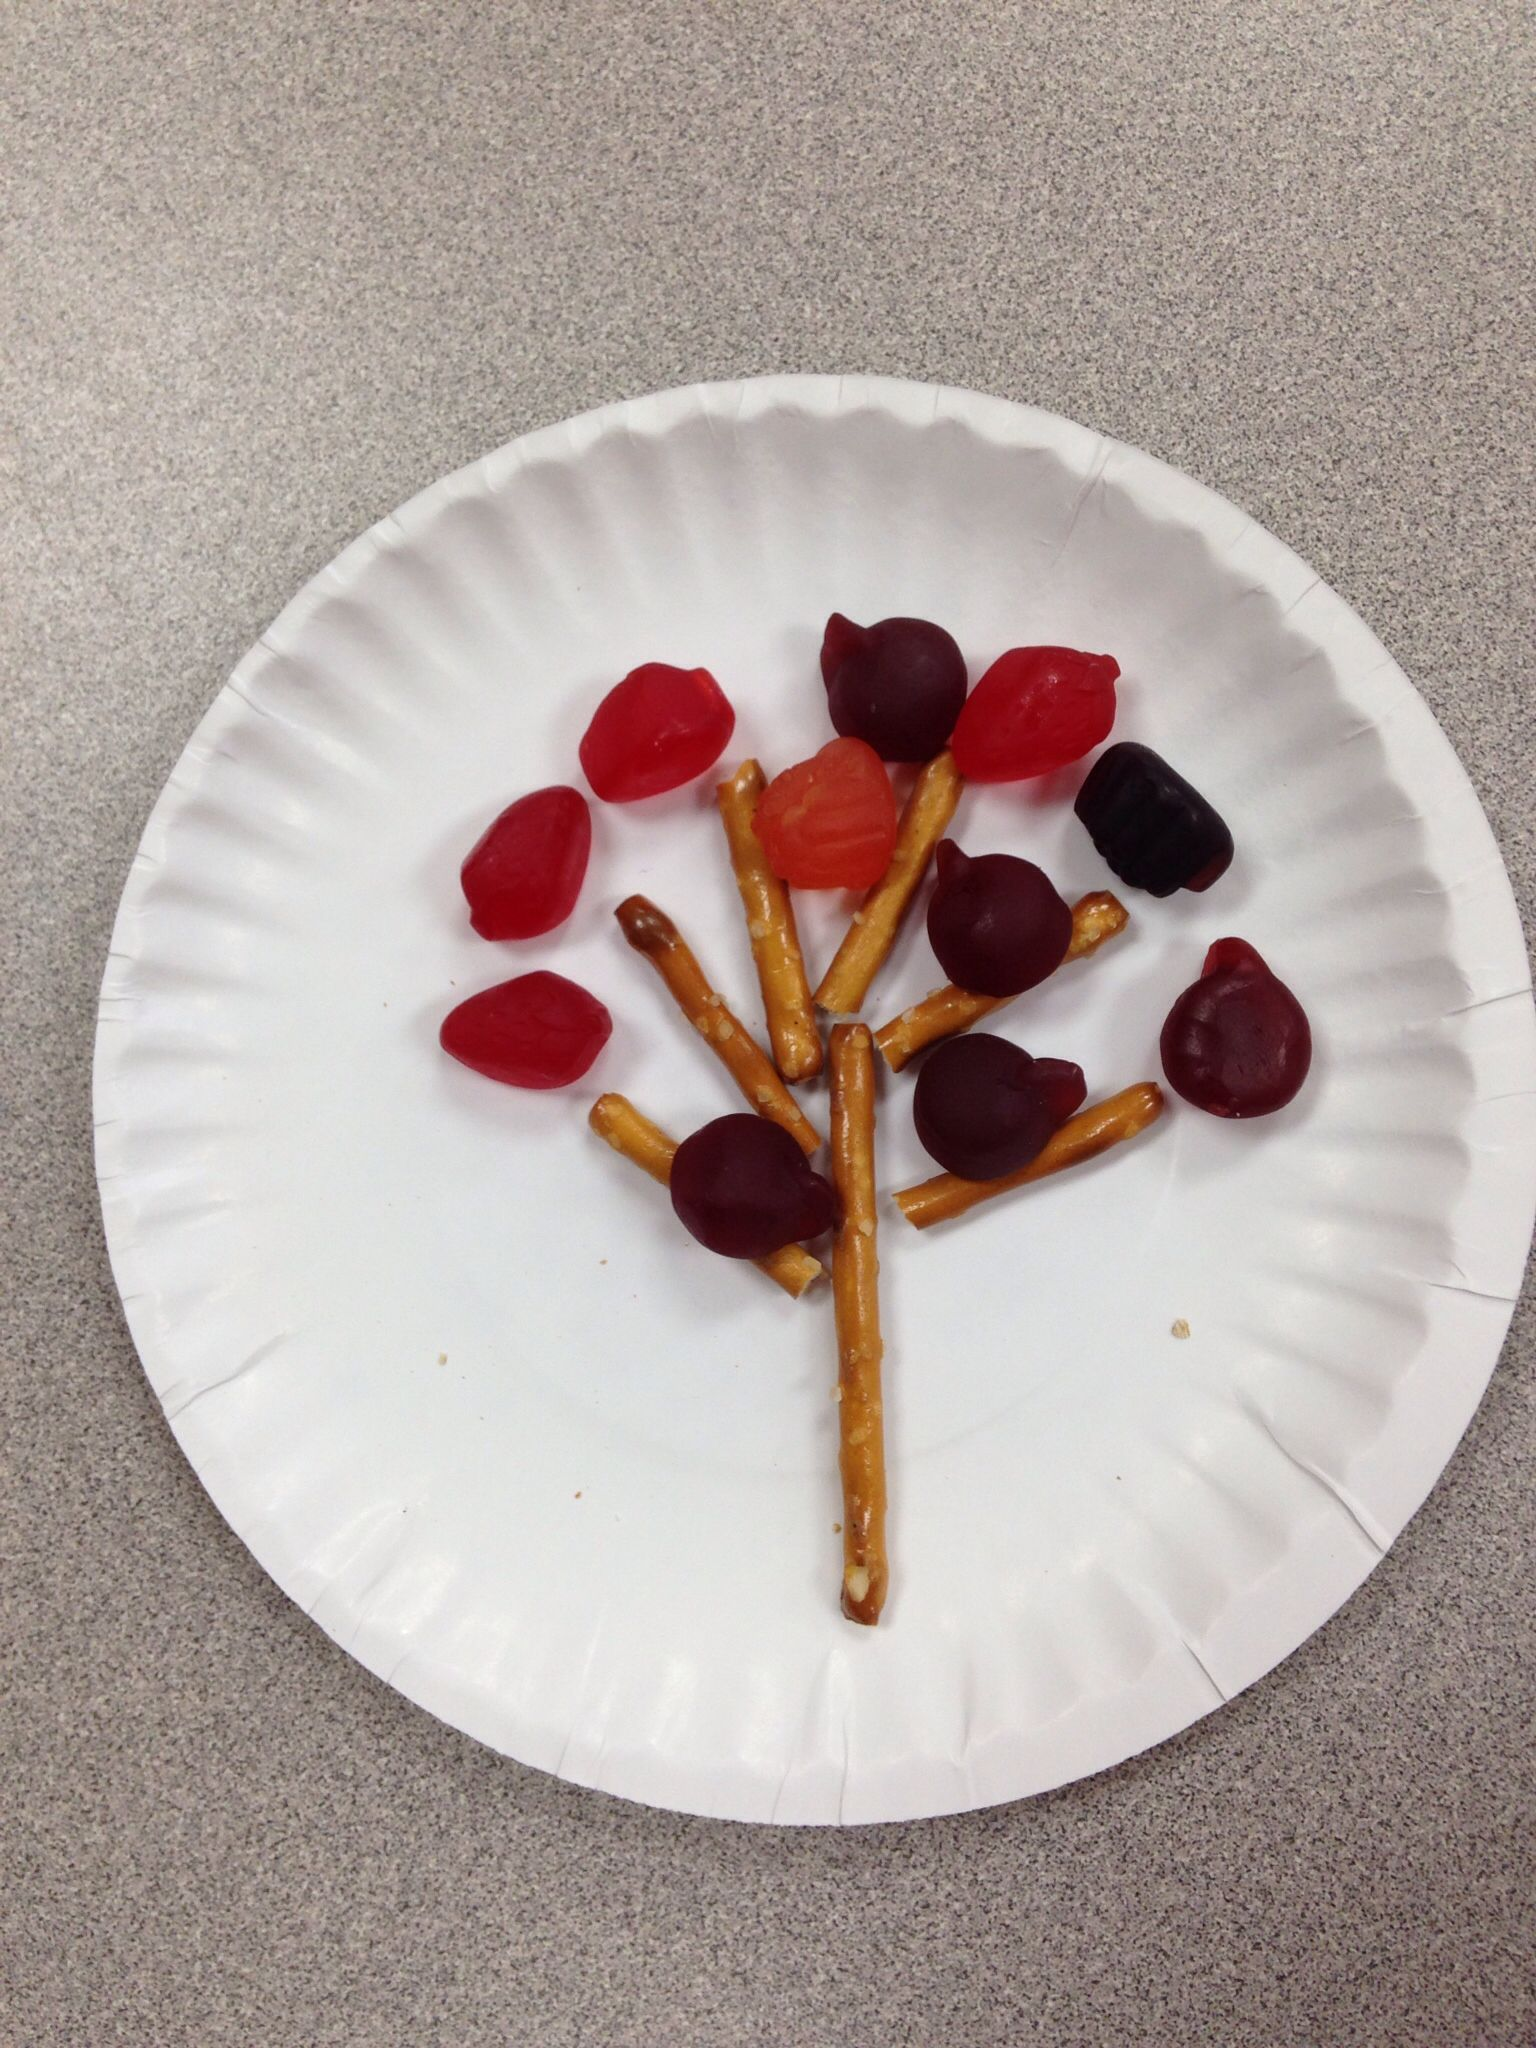 Fall Tree With Stick Pretzels And Fruit Snacks